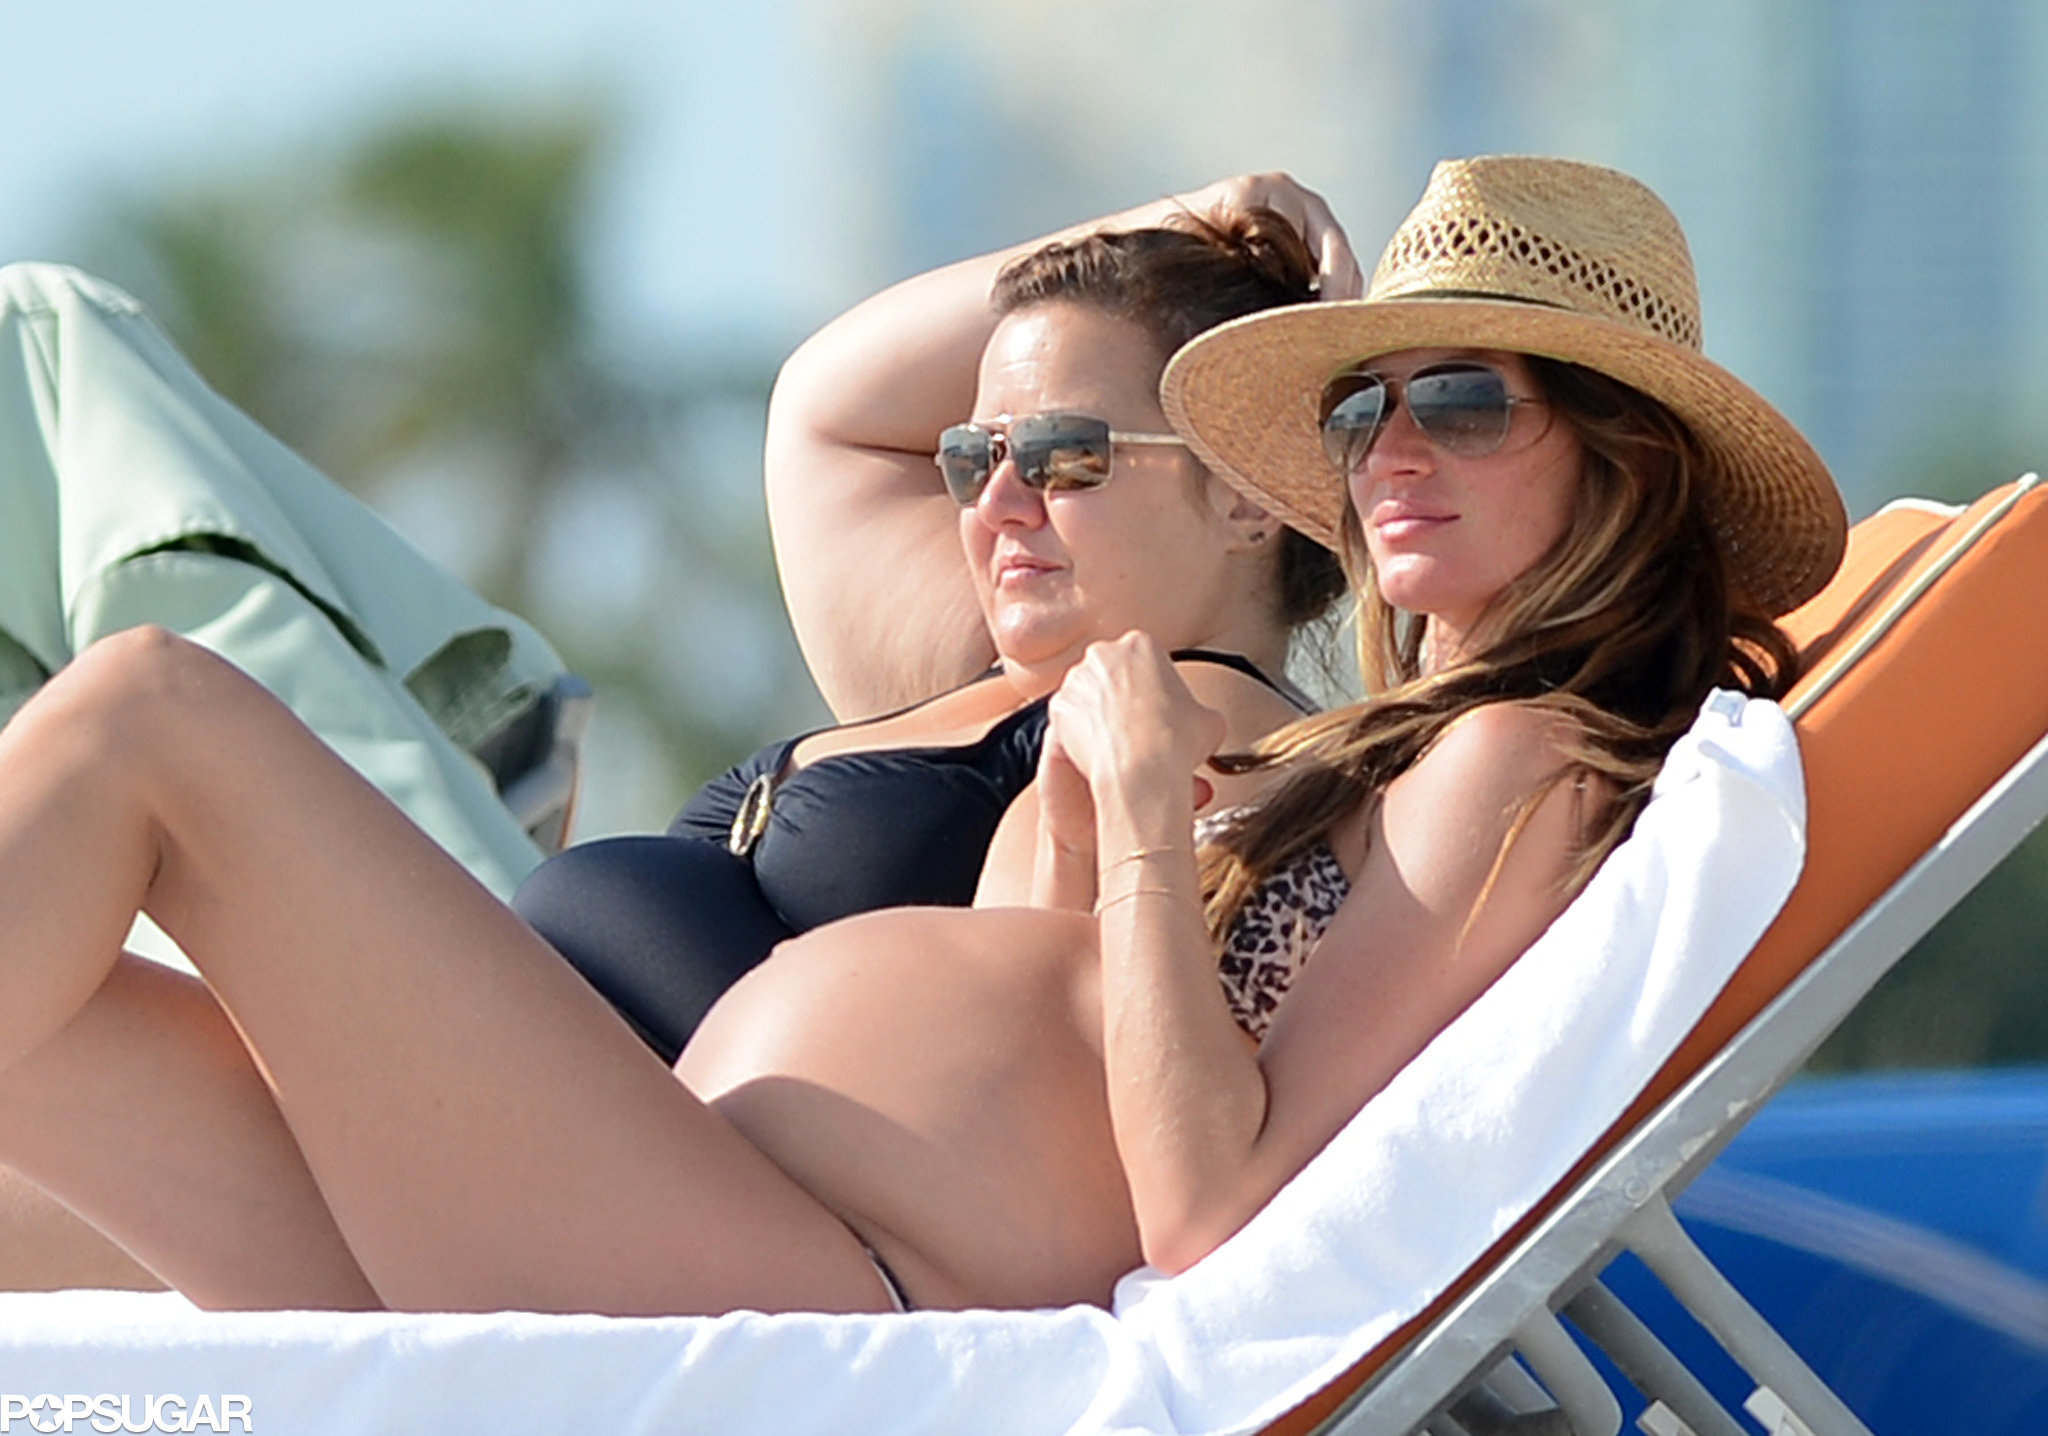 A pregnant Gisele Bundchen tanned on the beach in Miami with a friend in November 2012.